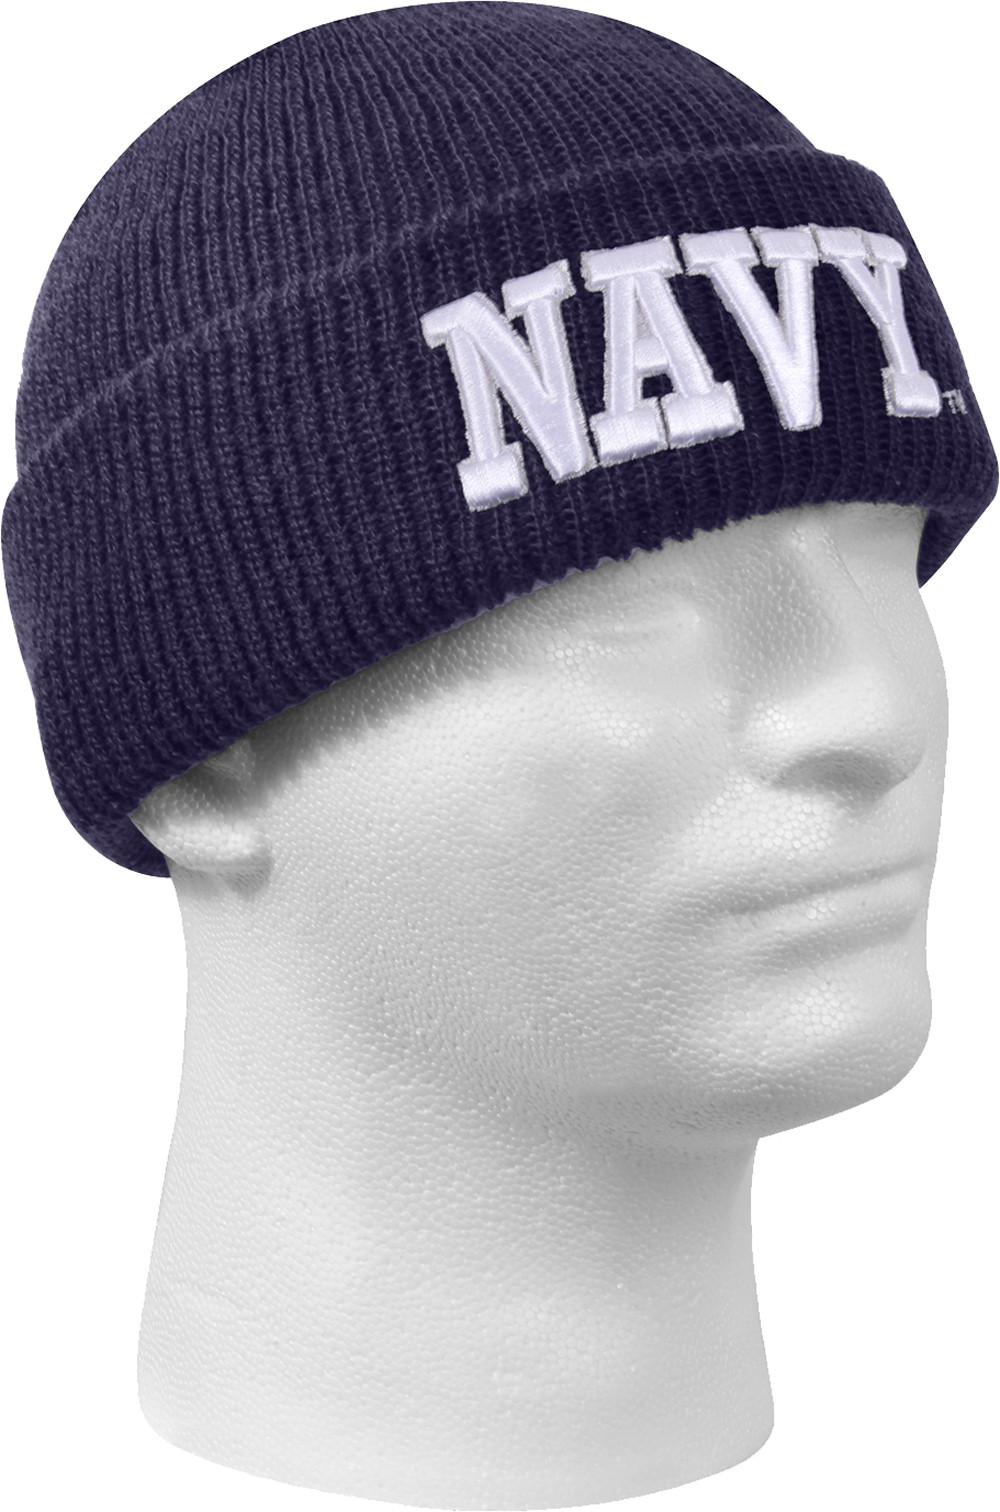 Navy Blue Deluxe Embroidered Navy Knitted Acrylic Winter Watch Cap 8c1b71d02